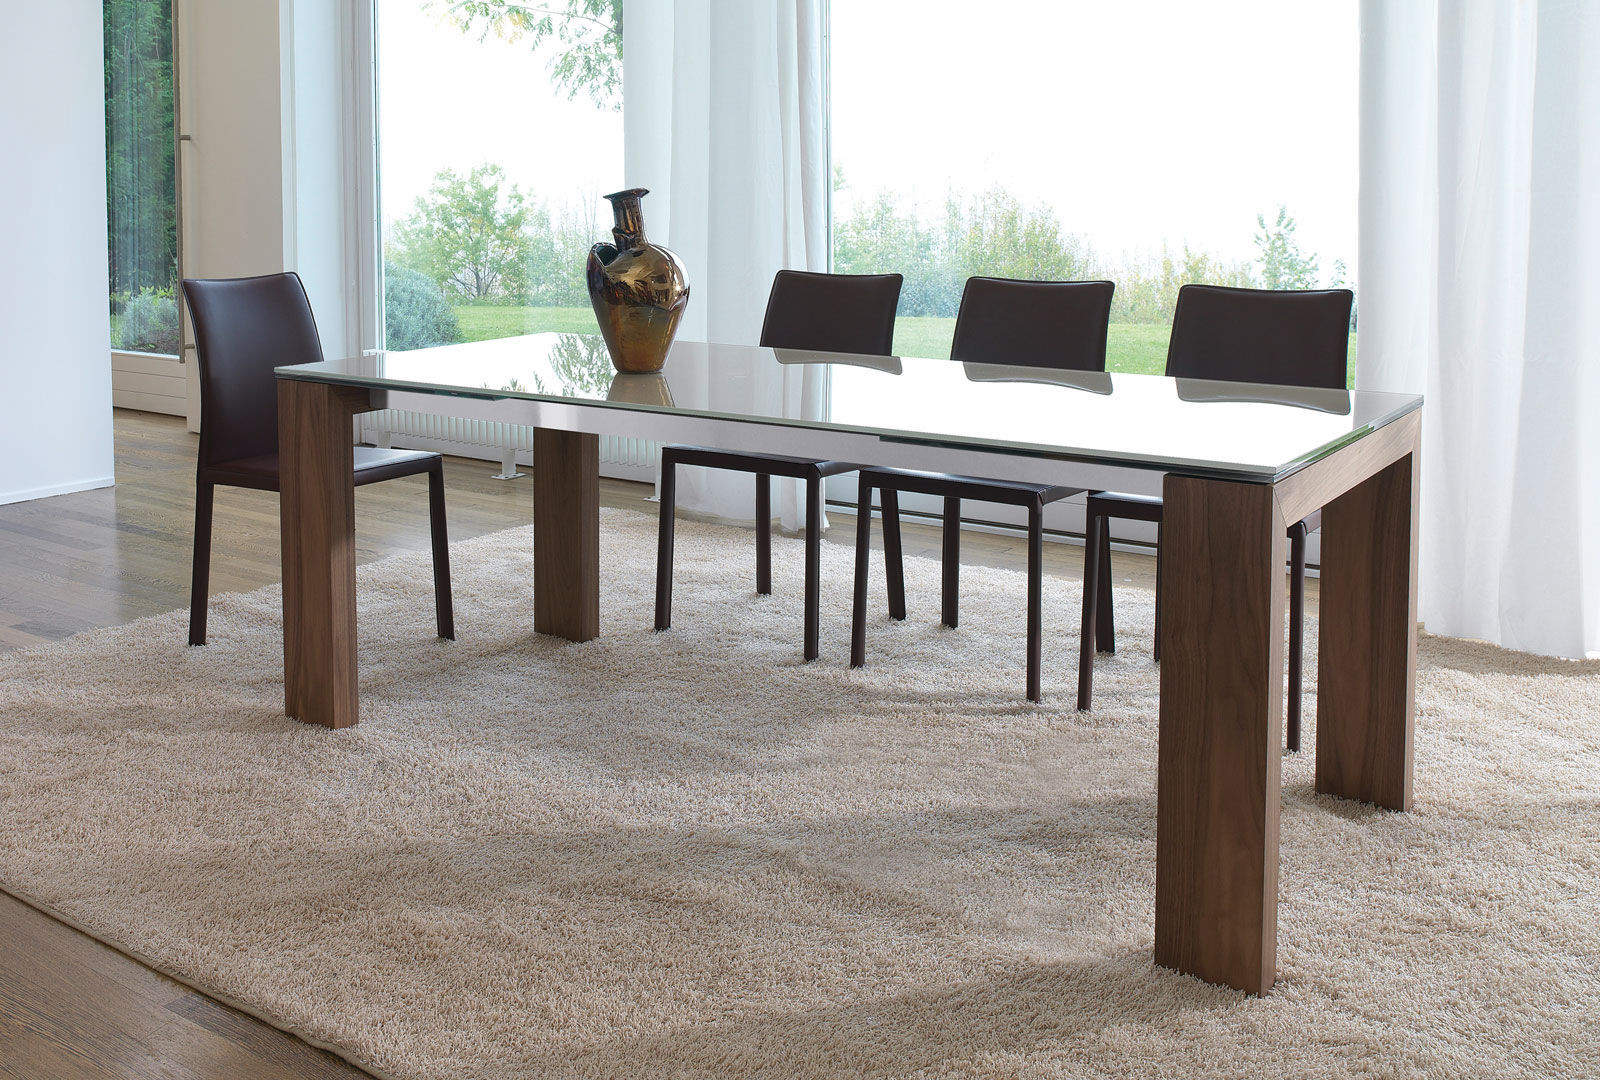 Contemporary dining table glass lacquered wood tempered glass aliante